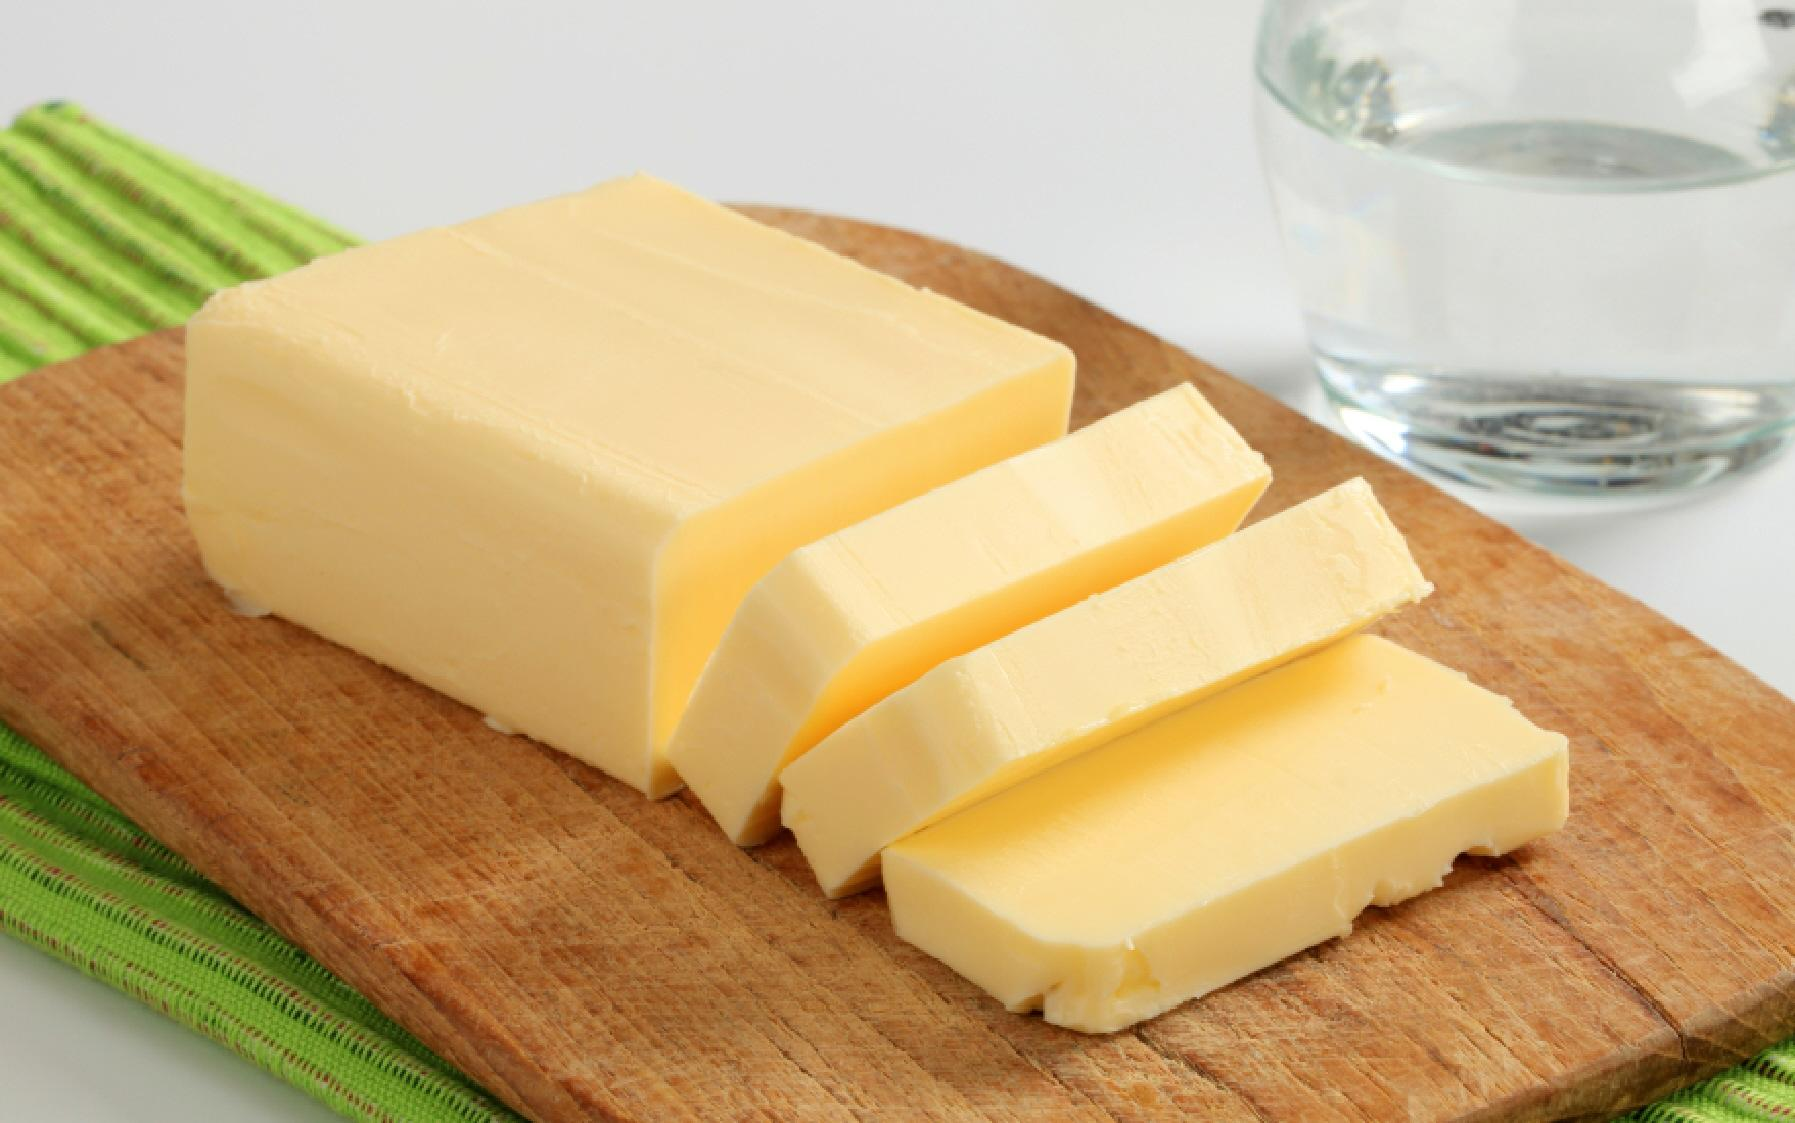 Iran running out of imported butter reserves